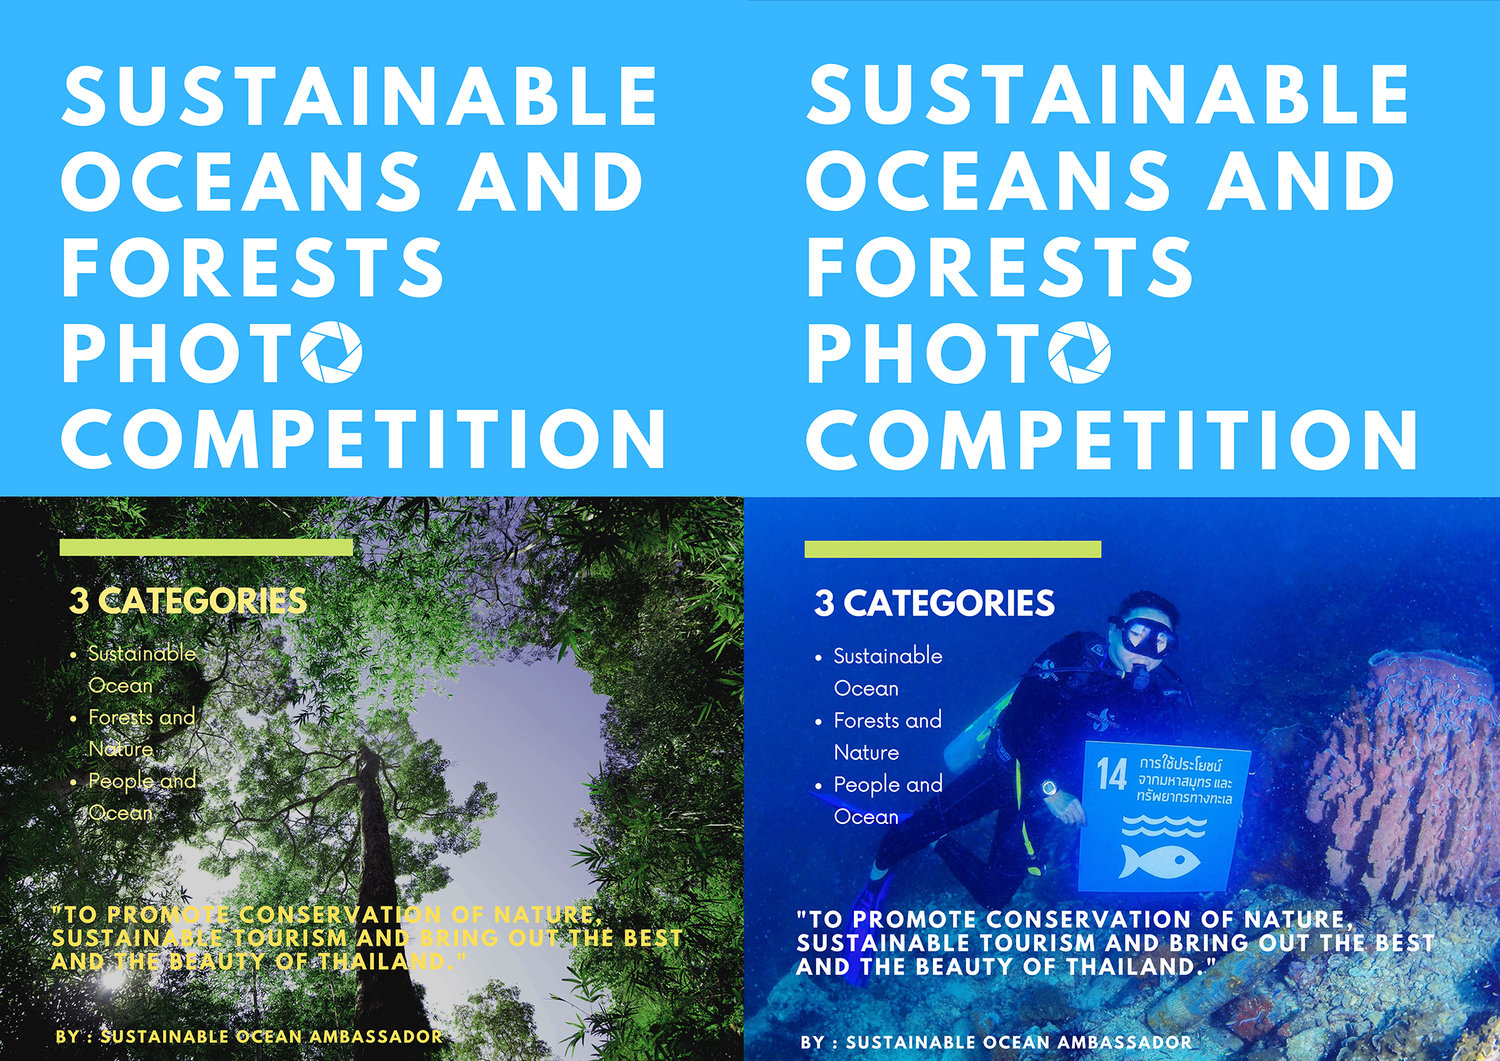 Sustainable Oceans and Forests Photo Competition